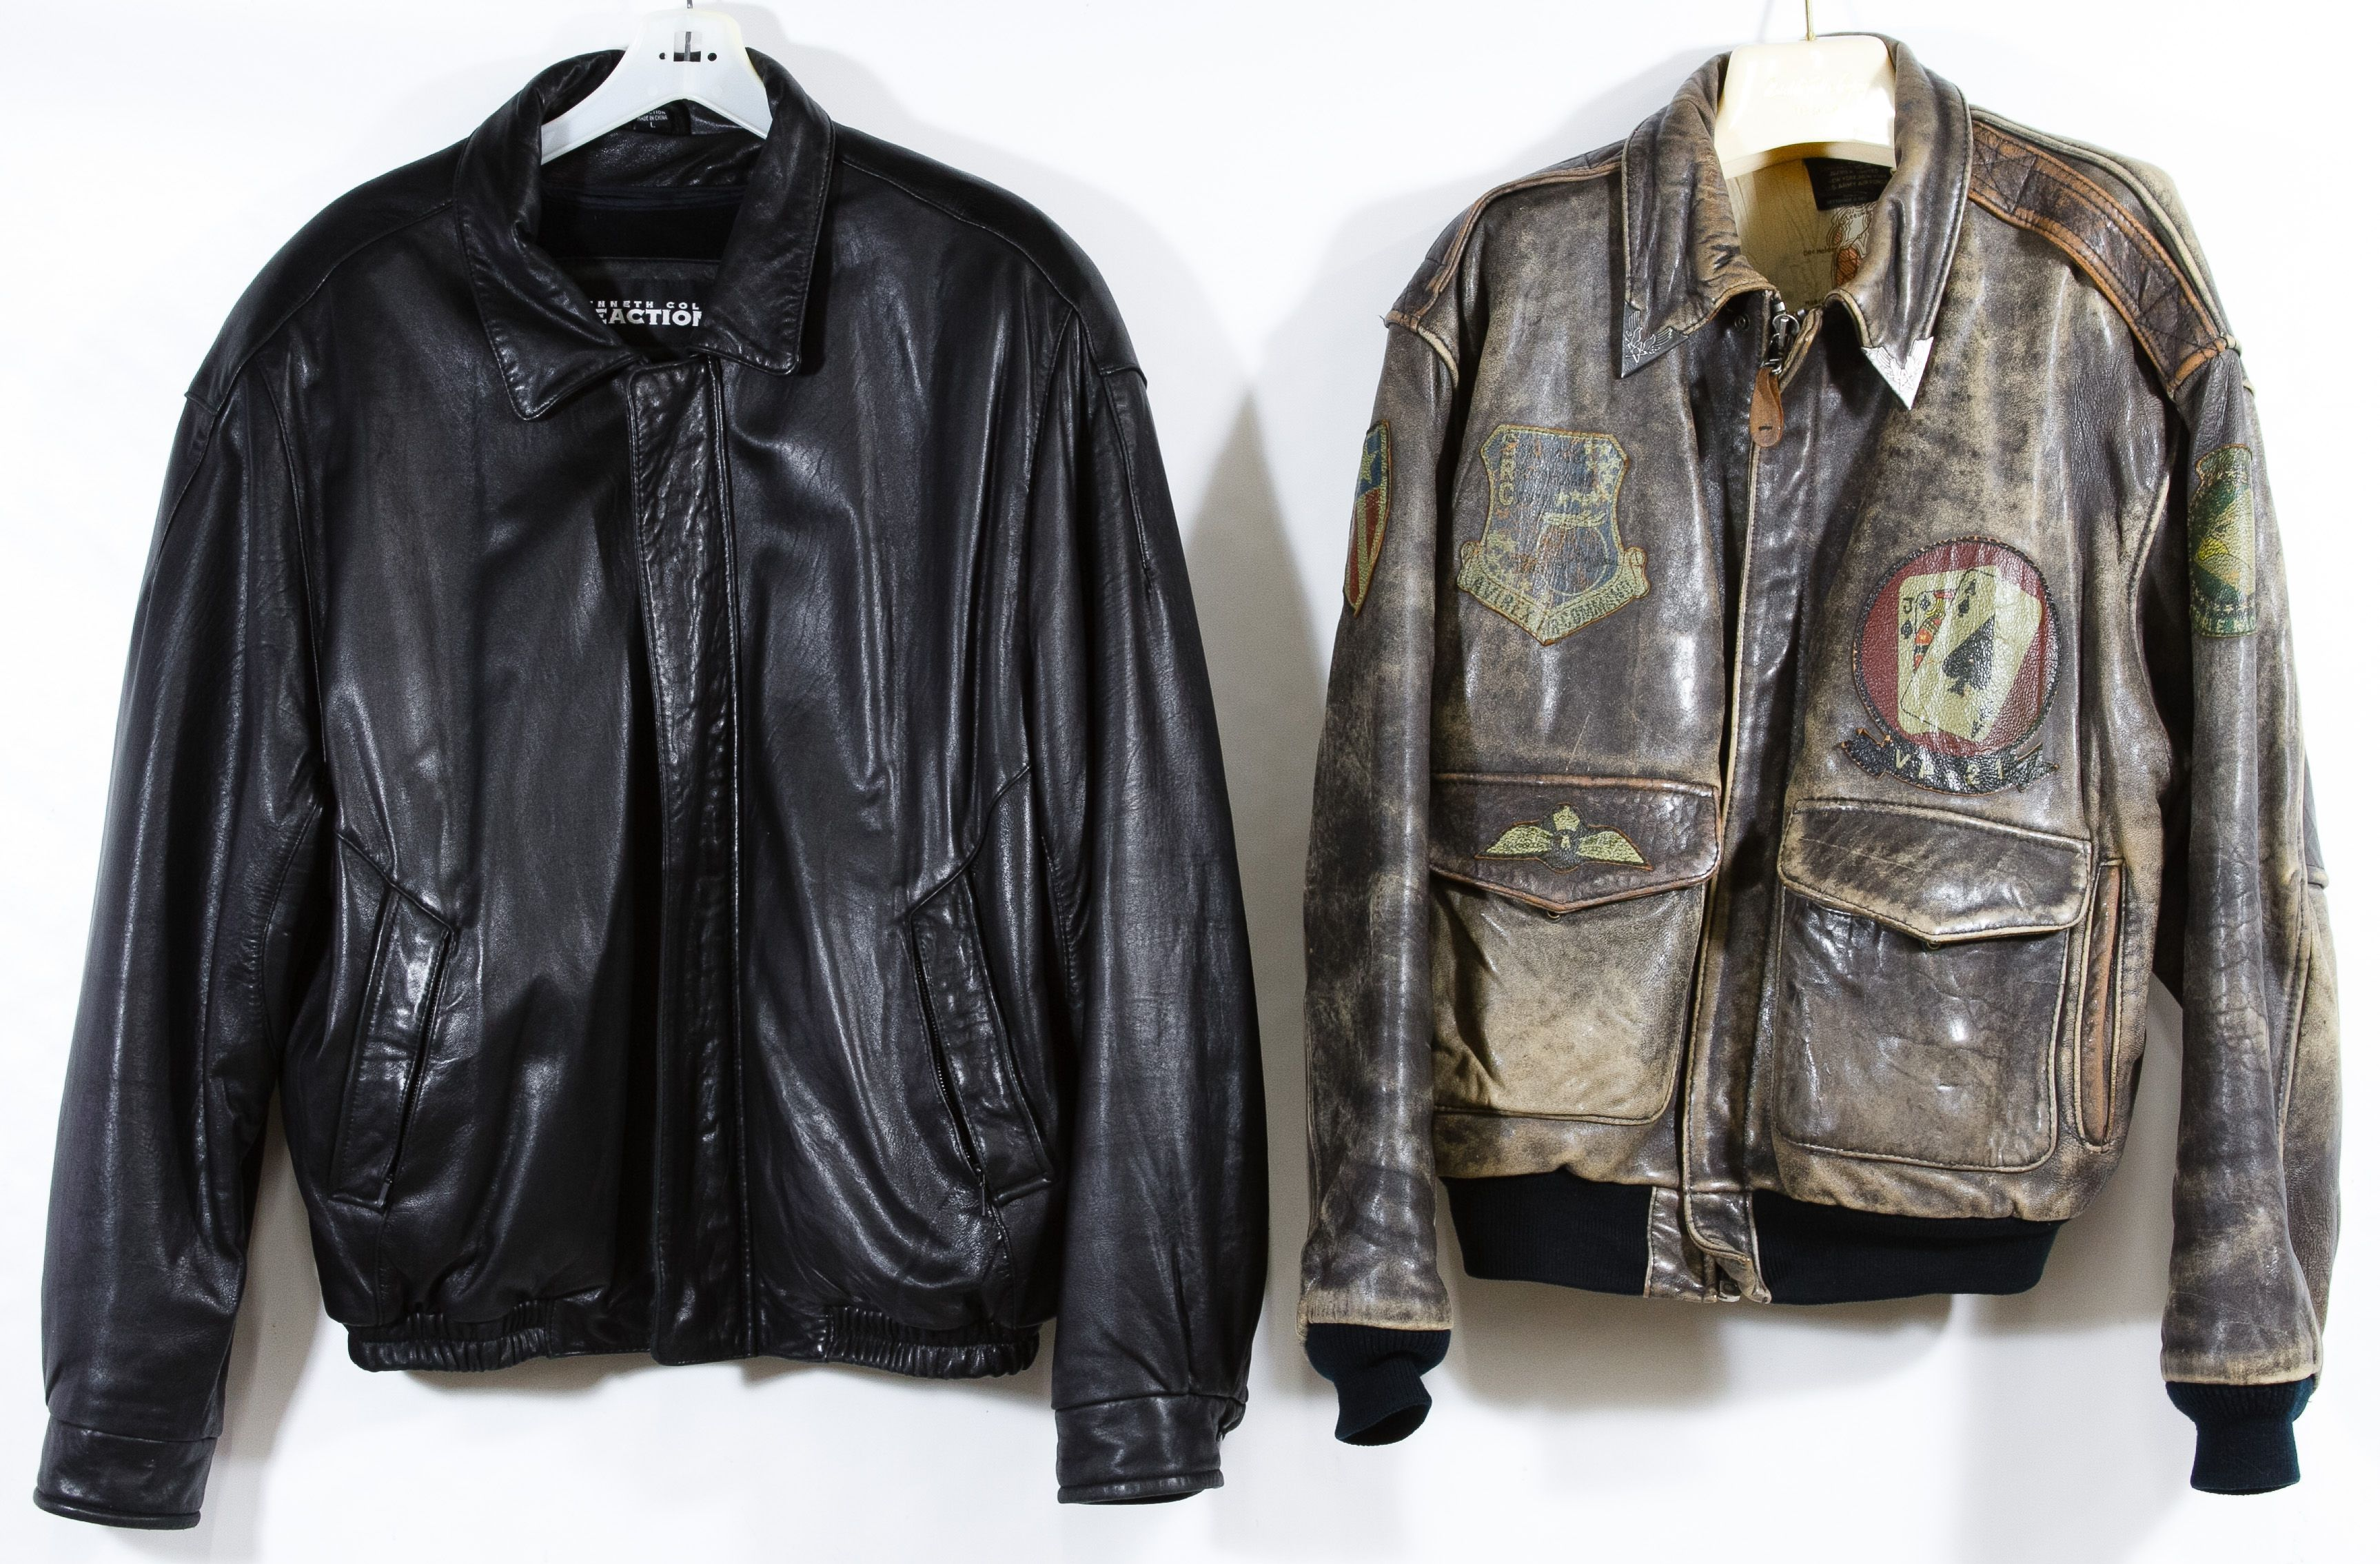 Lot 327 Leather Bomber Jacket Assortment Two Items Including A Large Size 1987 Brown Avirex Old L Leather Bomber Jacket Leather Flight Jacket Leather Bomber [ 2269 x 3453 Pixel ]